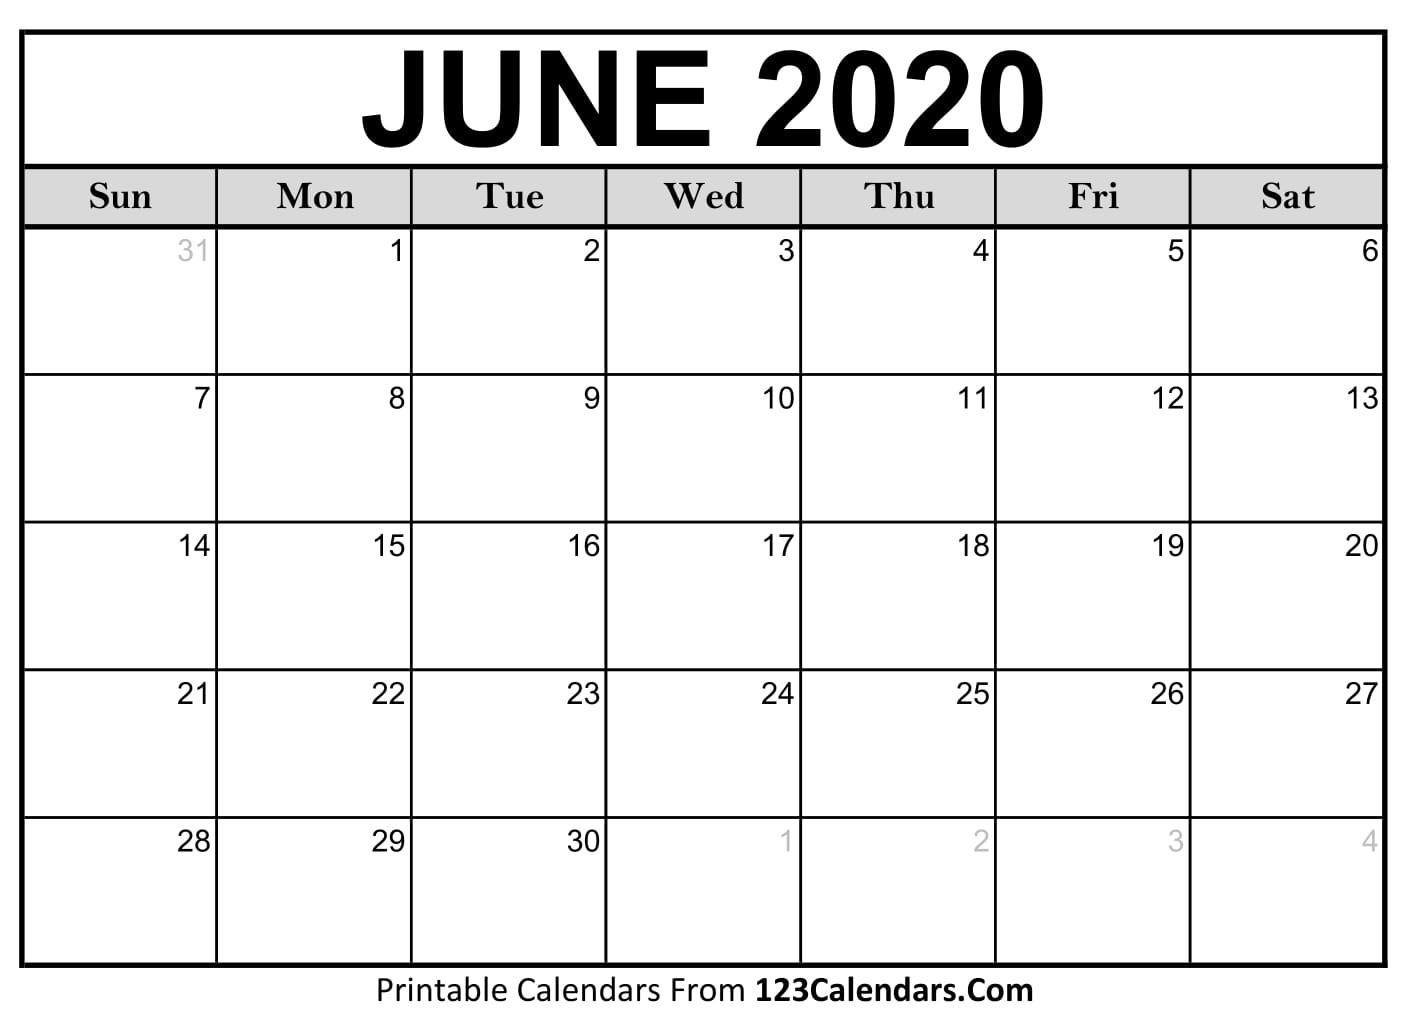 graphic relating to June Printable Calendar named June 2020 Printable Calendar